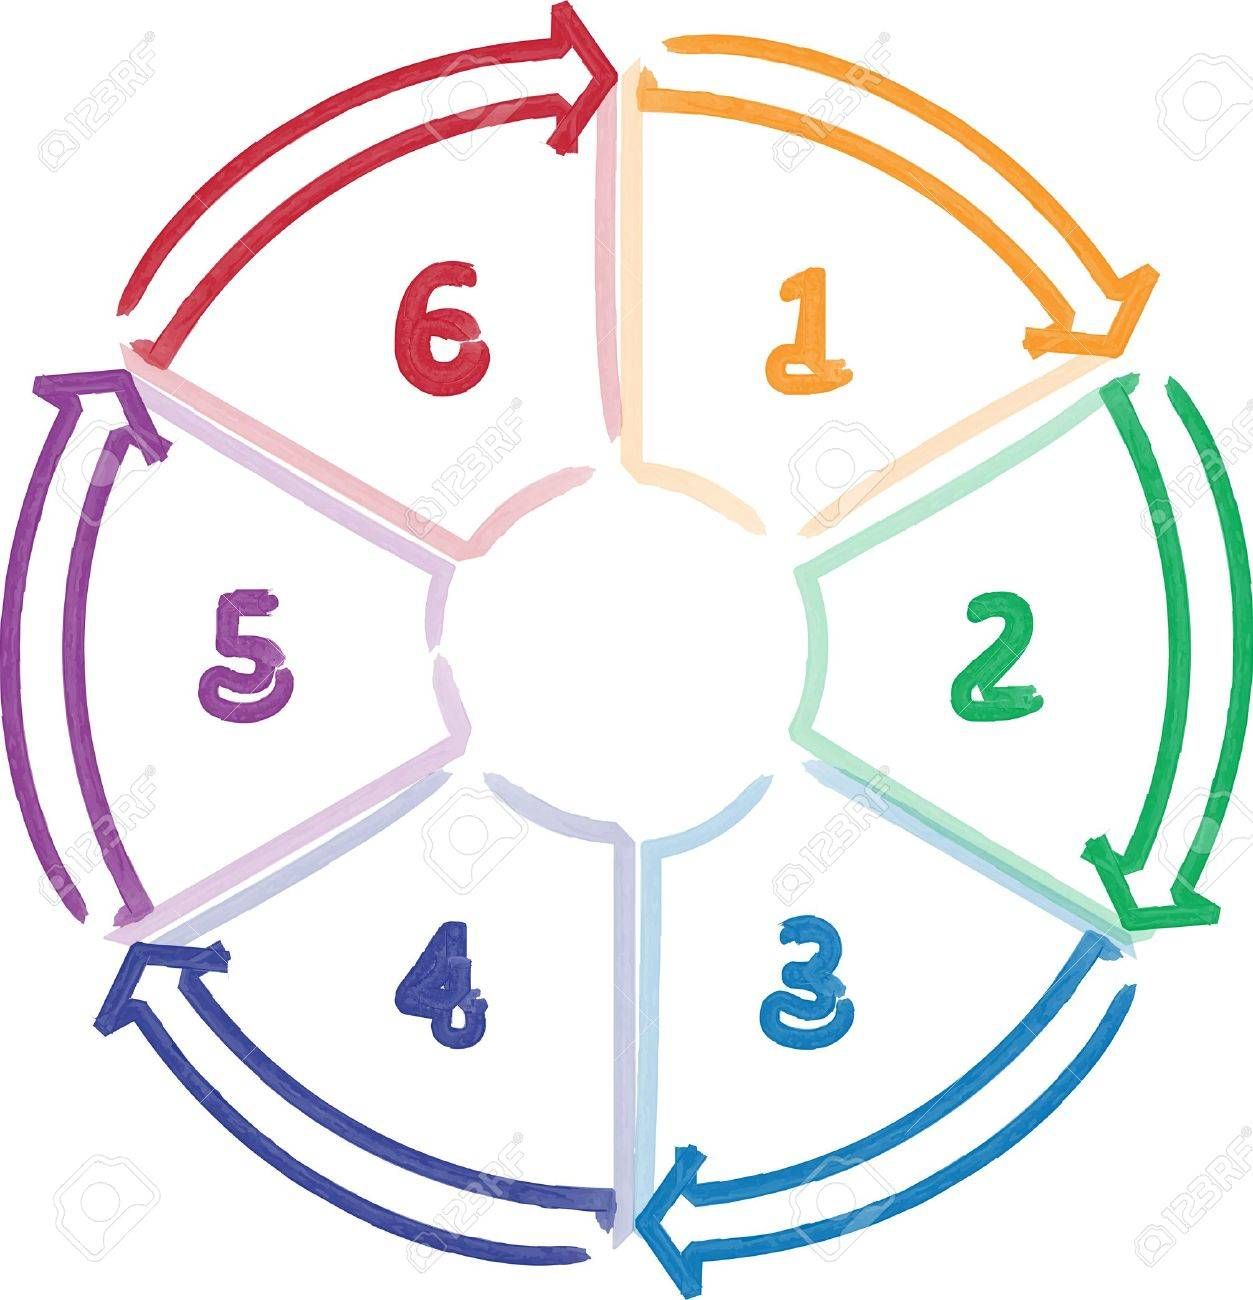 Process cycling arrow by arrow royalty free stock images image - Six Blank Numbered Cycle Process Arrow Business Diagram Illustration Stock Illustration 9914657